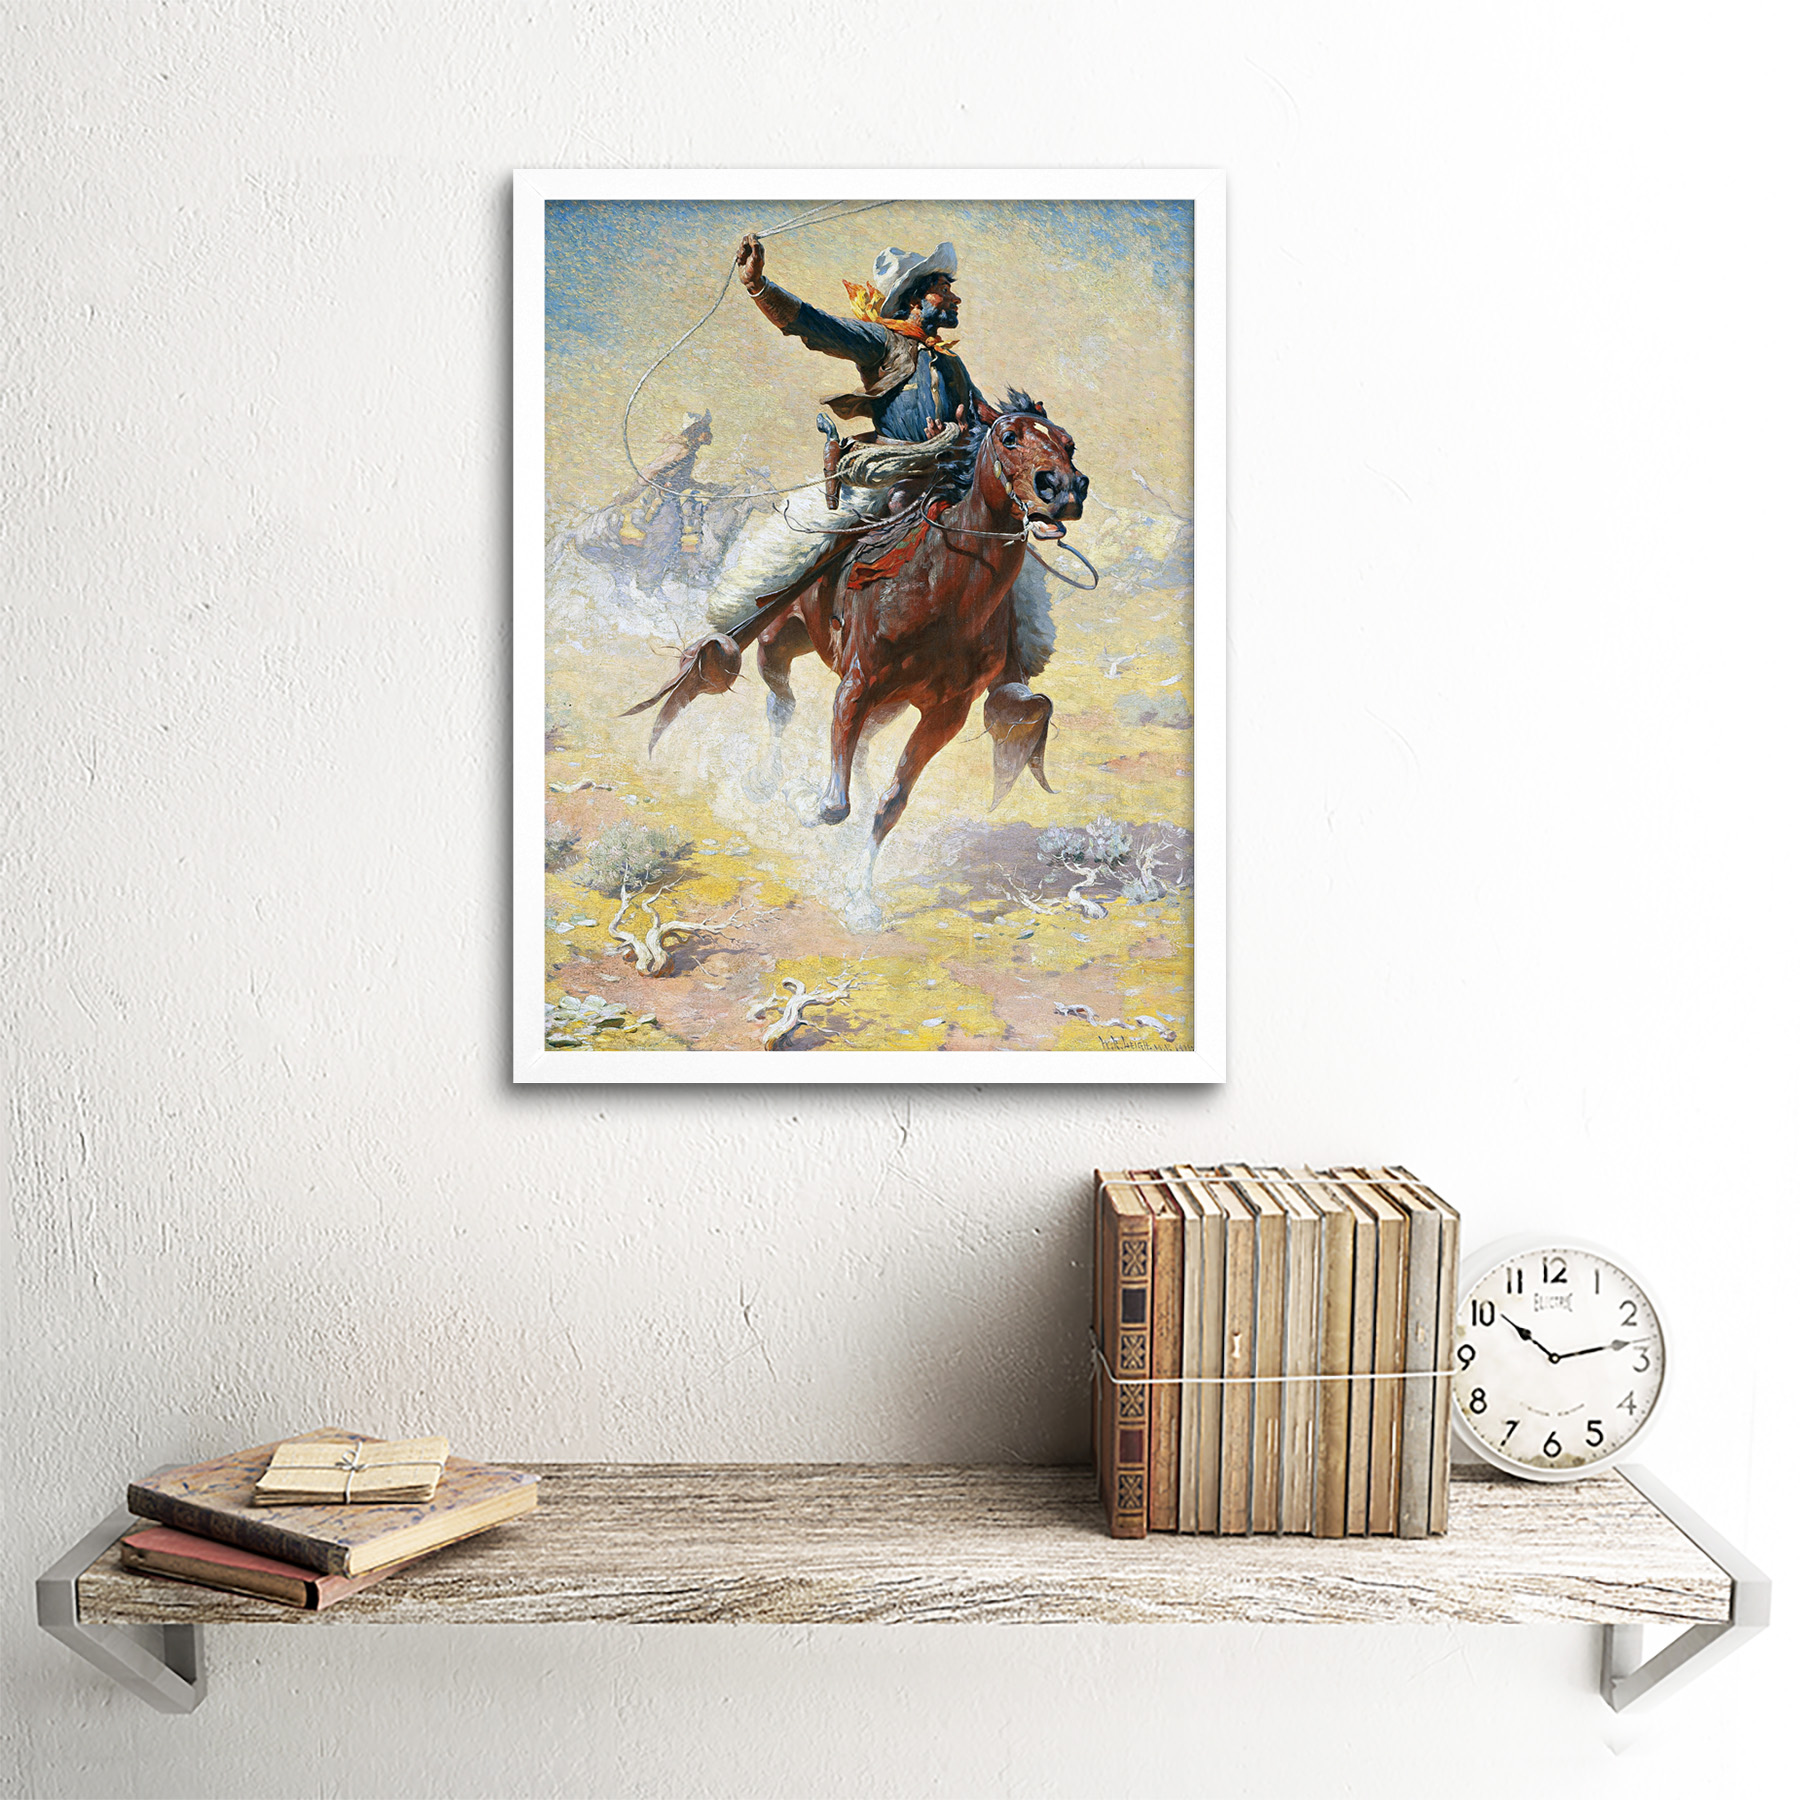 Leigh-The-Roping-Cowboy-Lasso-Horse-Painting-Art-Print-Framed-12x16 thumbnail 18